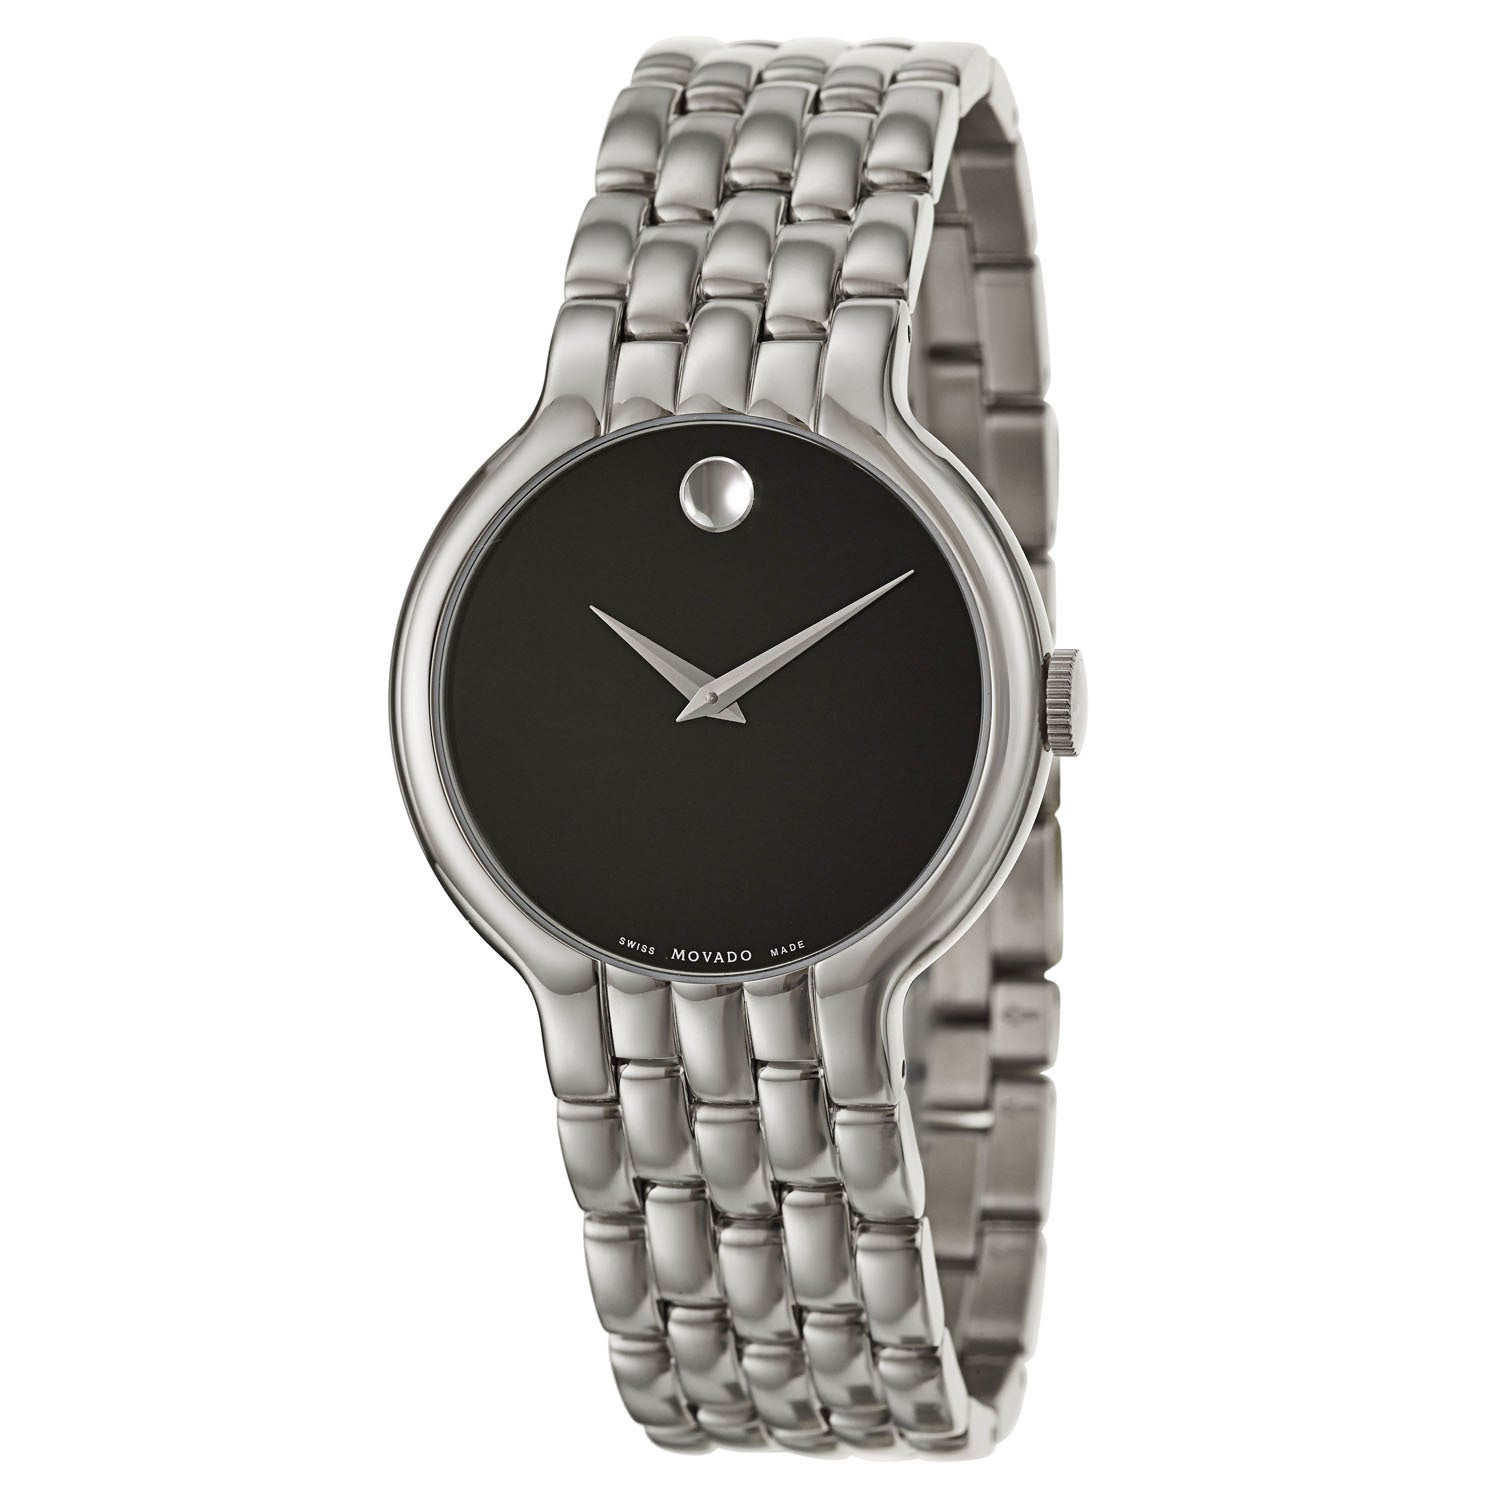 Movado Men's 0606337 'Veturi' Stainless Steel Swiss Quartz Watch at Sears.com